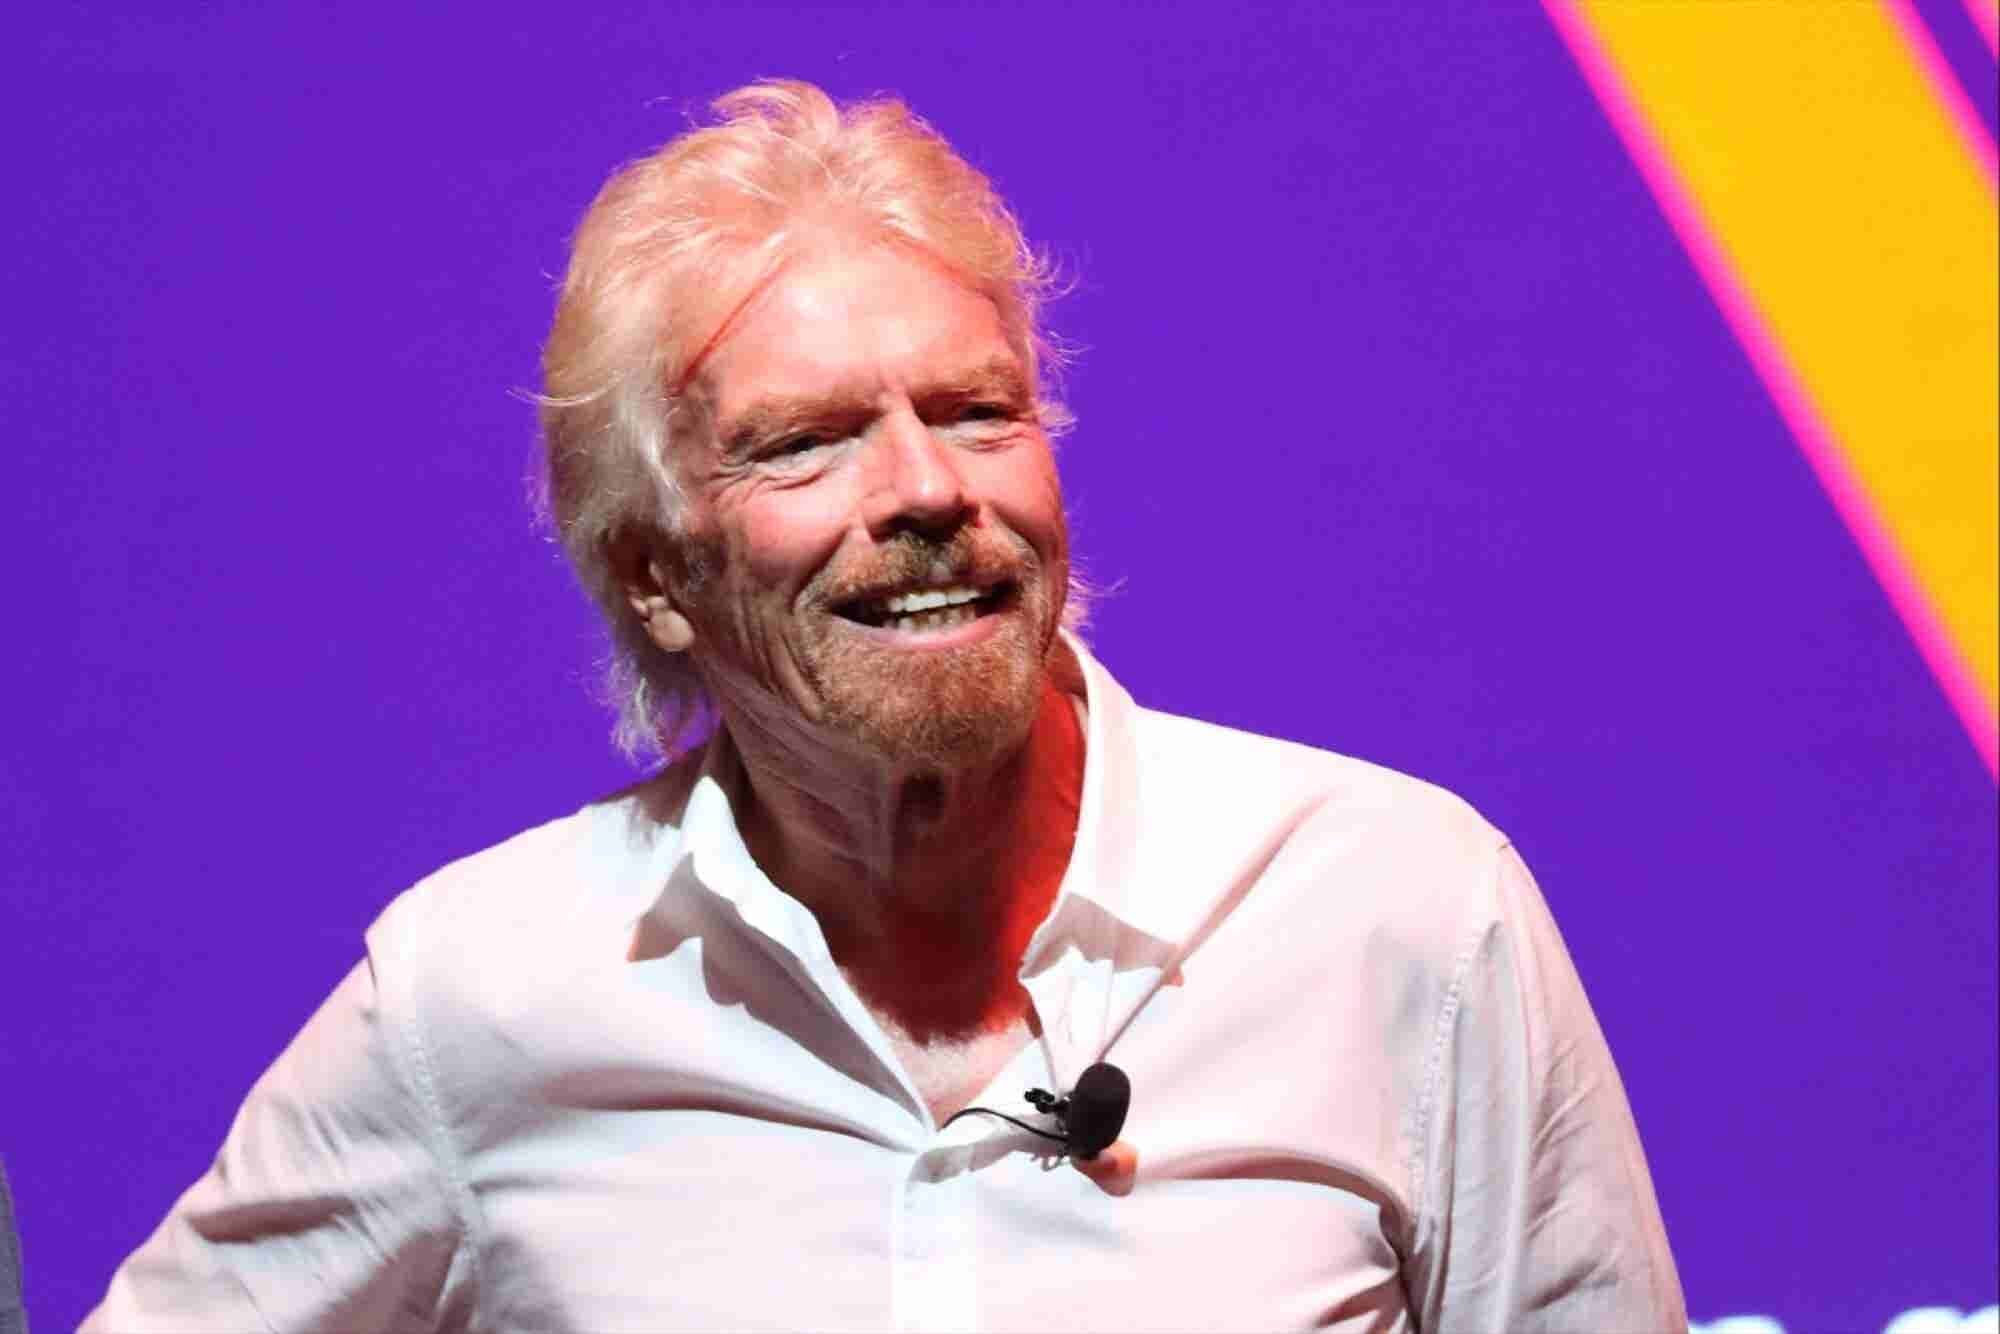 Richard Branson: How to Spot an Opportunity